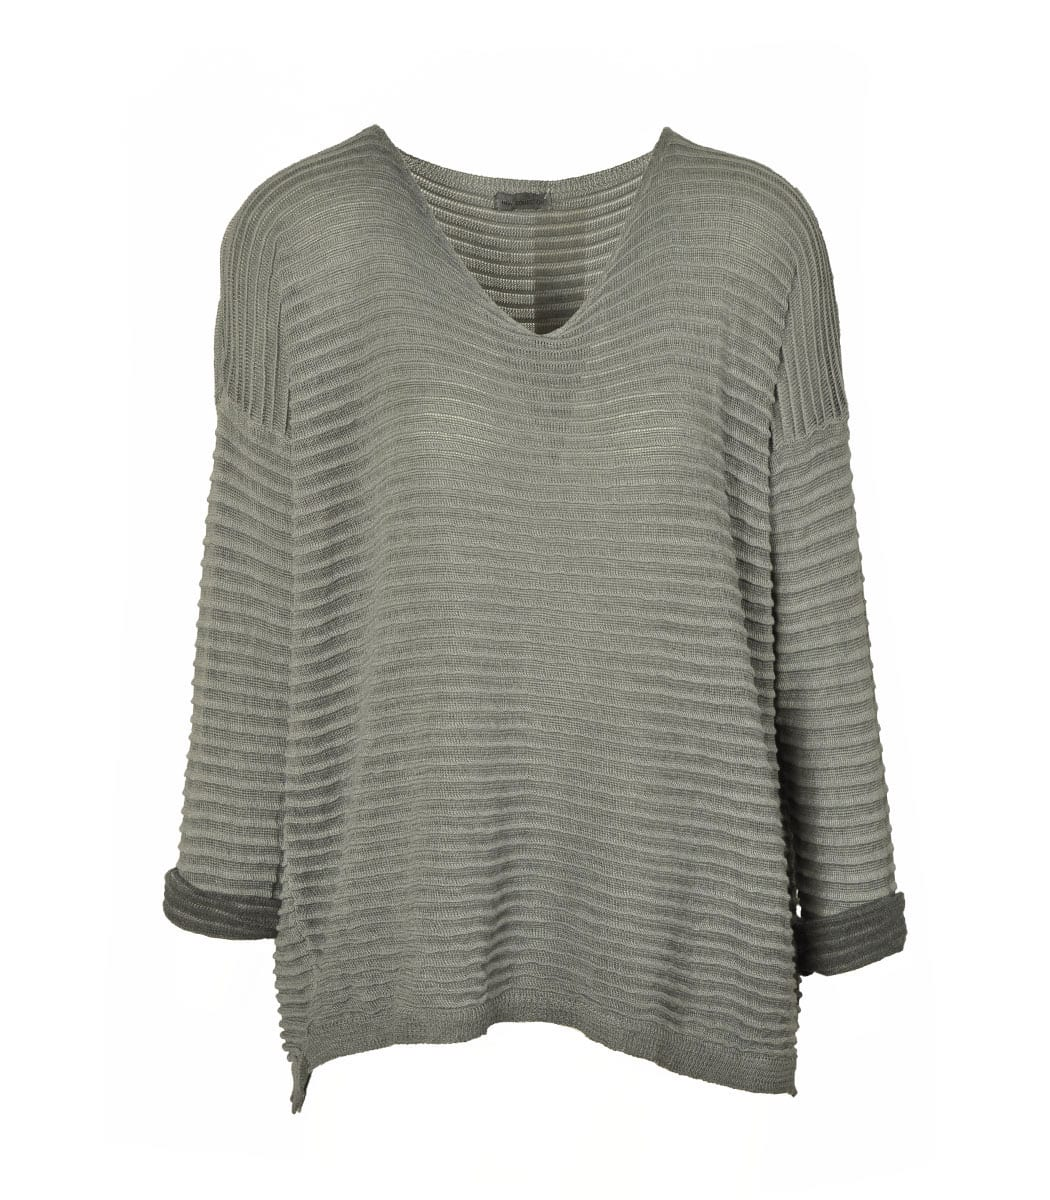 Rib stripped knit top